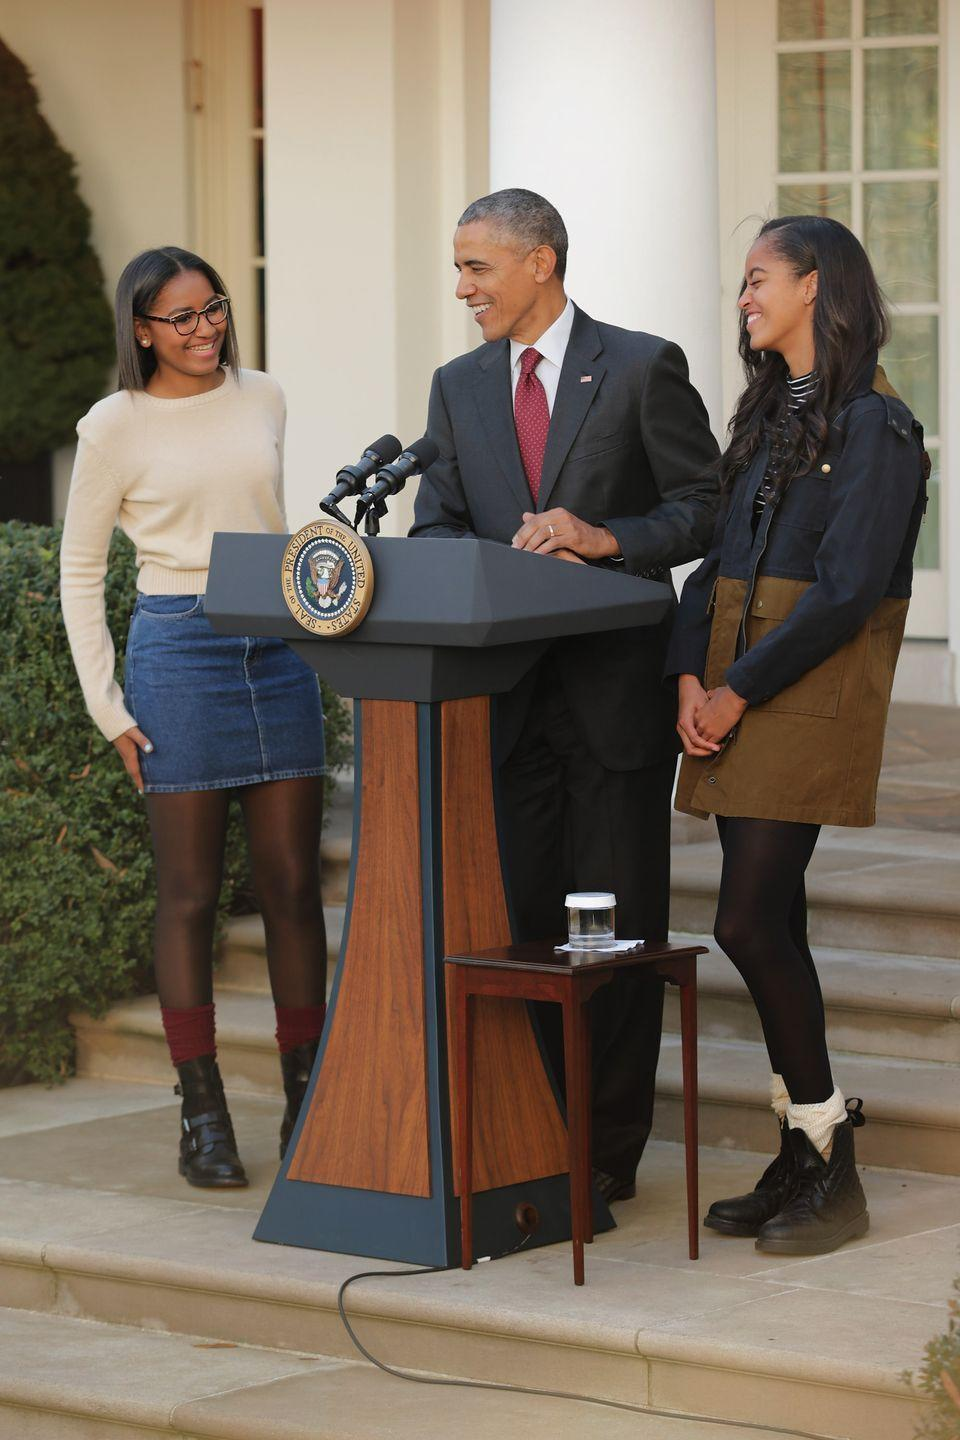 """<p><strong>Children</strong>: Malia Obama (21) and Sasha Obama (19)</p><p>We've all watched the 44th president's two girls, <a href=""""https://www.oprahmag.com/entertainment/books/a32362642/malia-and-sasha-obama-netflix-becoming/"""" rel=""""nofollow noopener"""" target=""""_blank"""" data-ylk=""""slk:Sasha and Malia"""" class=""""link rapid-noclick-resp"""">Sasha and Malia</a>, grow up and become adults before our very eyes. But President Obama is plenty busy, even with an empty nest, between <a href=""""https://www.oprahmag.com/entertainment/tv-movies/a27323589/barack-michelle-obama-list-netflix-shows/"""" rel=""""nofollow noopener"""" target=""""_blank"""" data-ylk=""""slk:a Netflix deal"""" class=""""link rapid-noclick-resp"""">a Netflix deal</a> with <a href=""""https://www.oprahmag.com/entertainment/tv-movies/a32347191/michelle-barack-obama-marriage-timeline/"""" rel=""""nofollow noopener"""" target=""""_blank"""" data-ylk=""""slk:the former first lady"""" class=""""link rapid-noclick-resp"""">the former first lady</a> and delivering <a href=""""https://www.oprahmag.com/life/a32528888/barack-obama-commencement-speech-2020-full-transcript/"""" rel=""""nofollow noopener"""" target=""""_blank"""" data-ylk=""""slk:online graduation speeches"""" class=""""link rapid-noclick-resp"""">online graduation speeches</a>.</p>"""